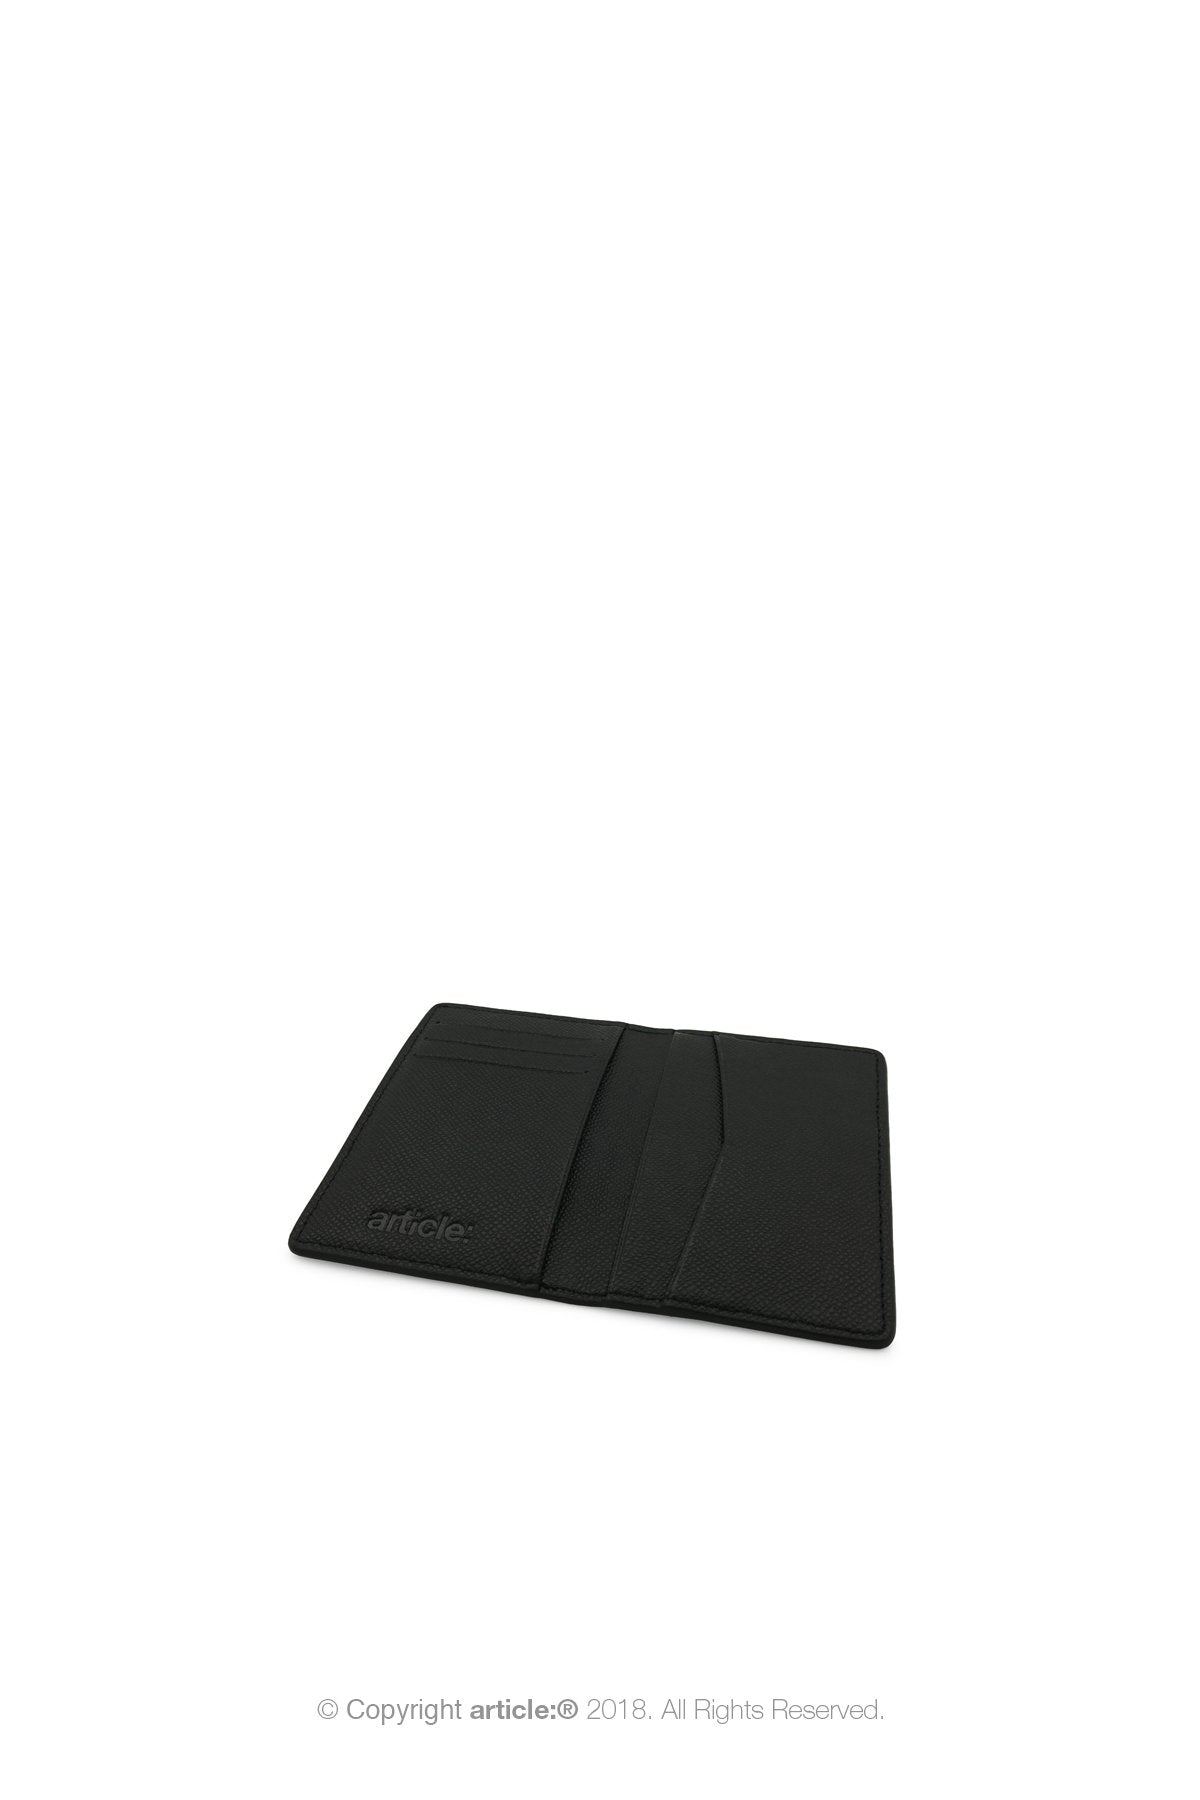 article: #202 Card Holder - Noir